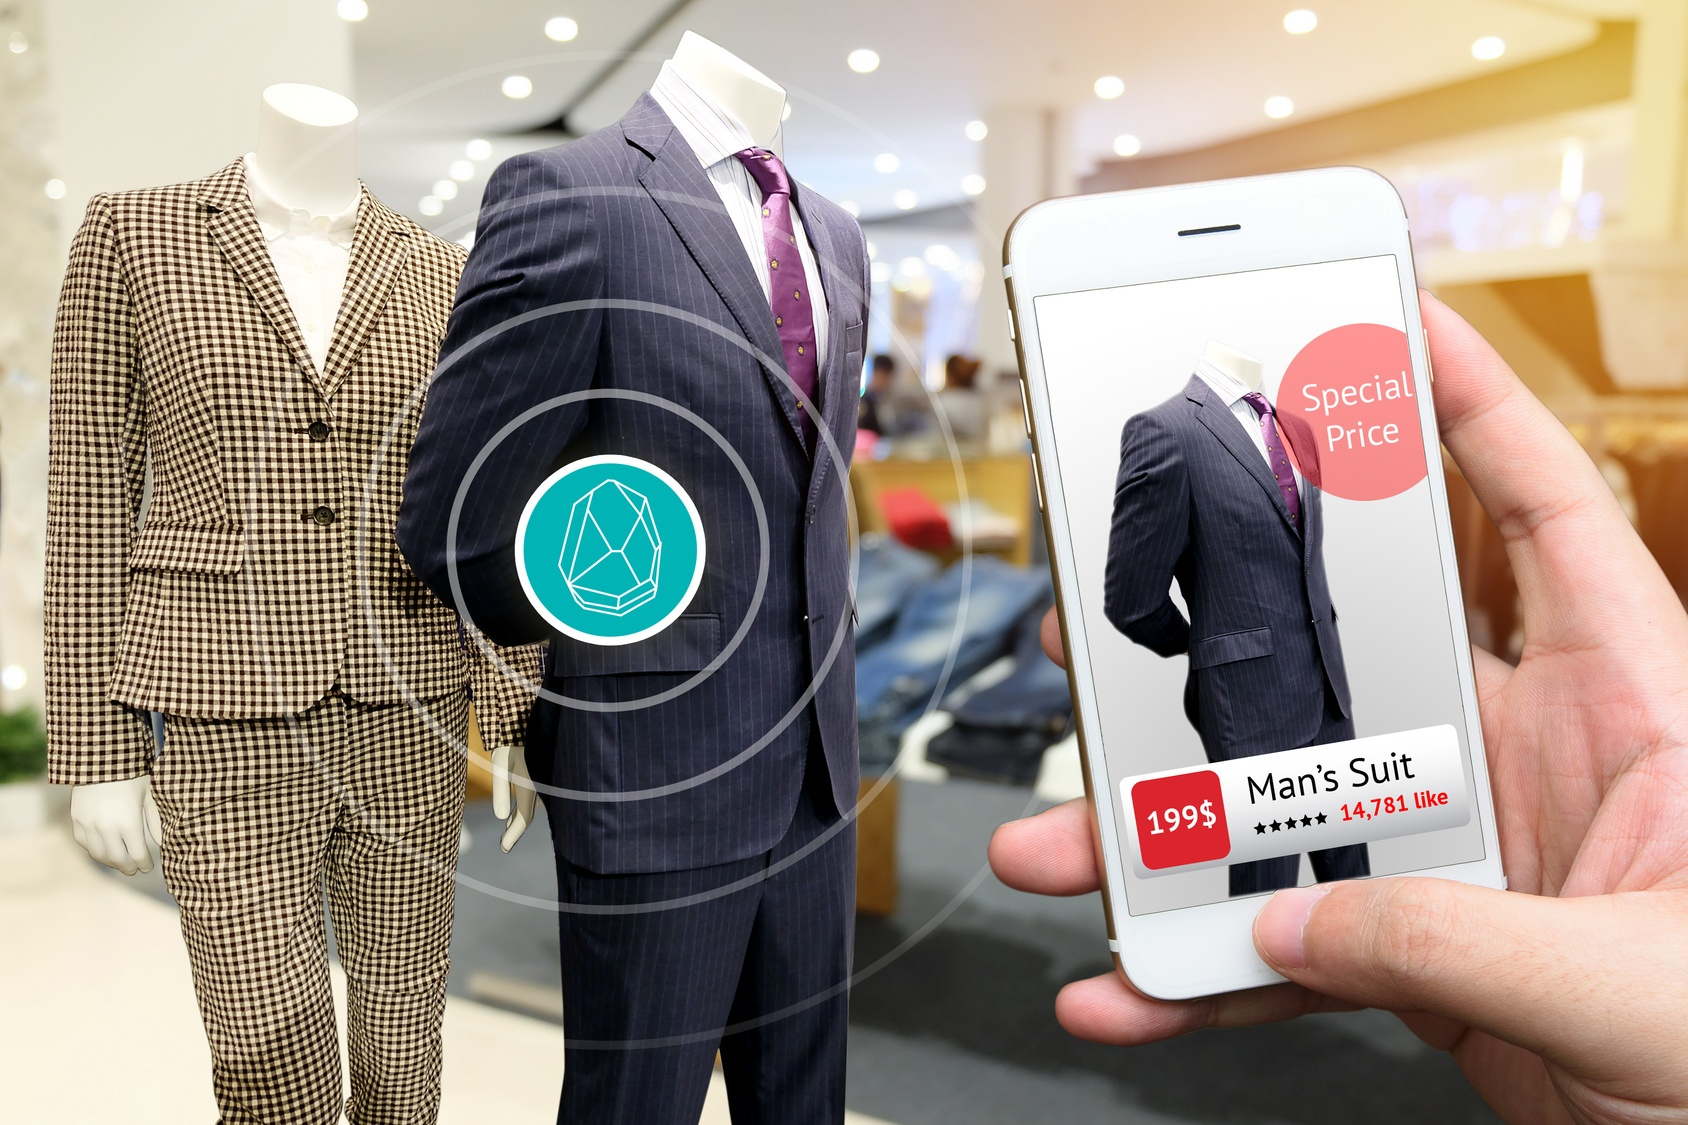 Beacon Technology In Retail: The Benefits & Drawbacks